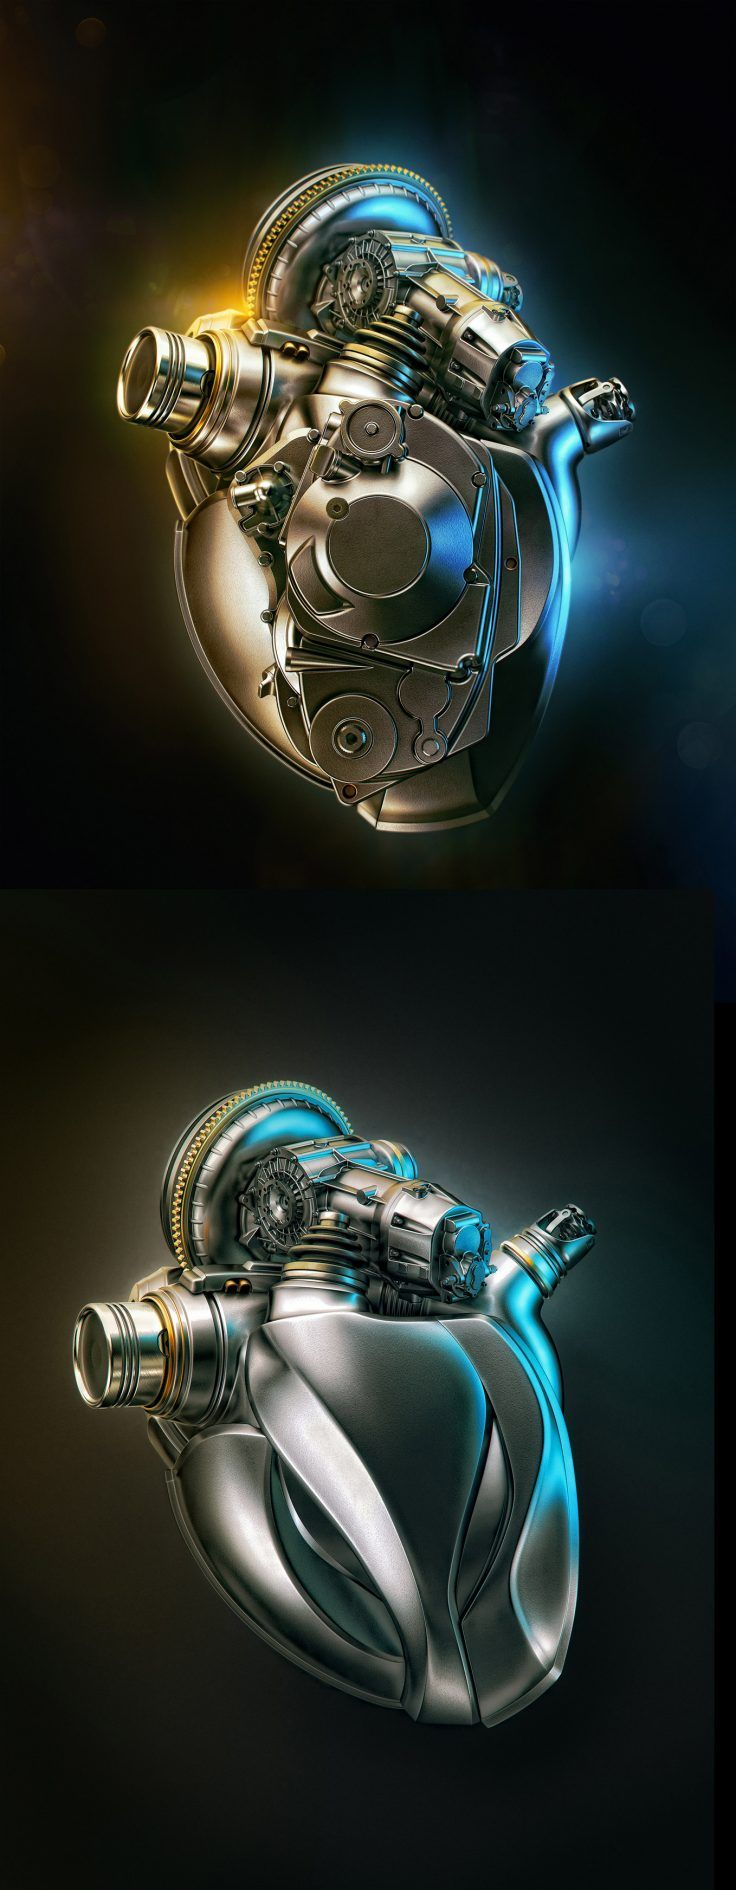 223 best DESIGN images on Pinterest   Armors, Auto design and ...